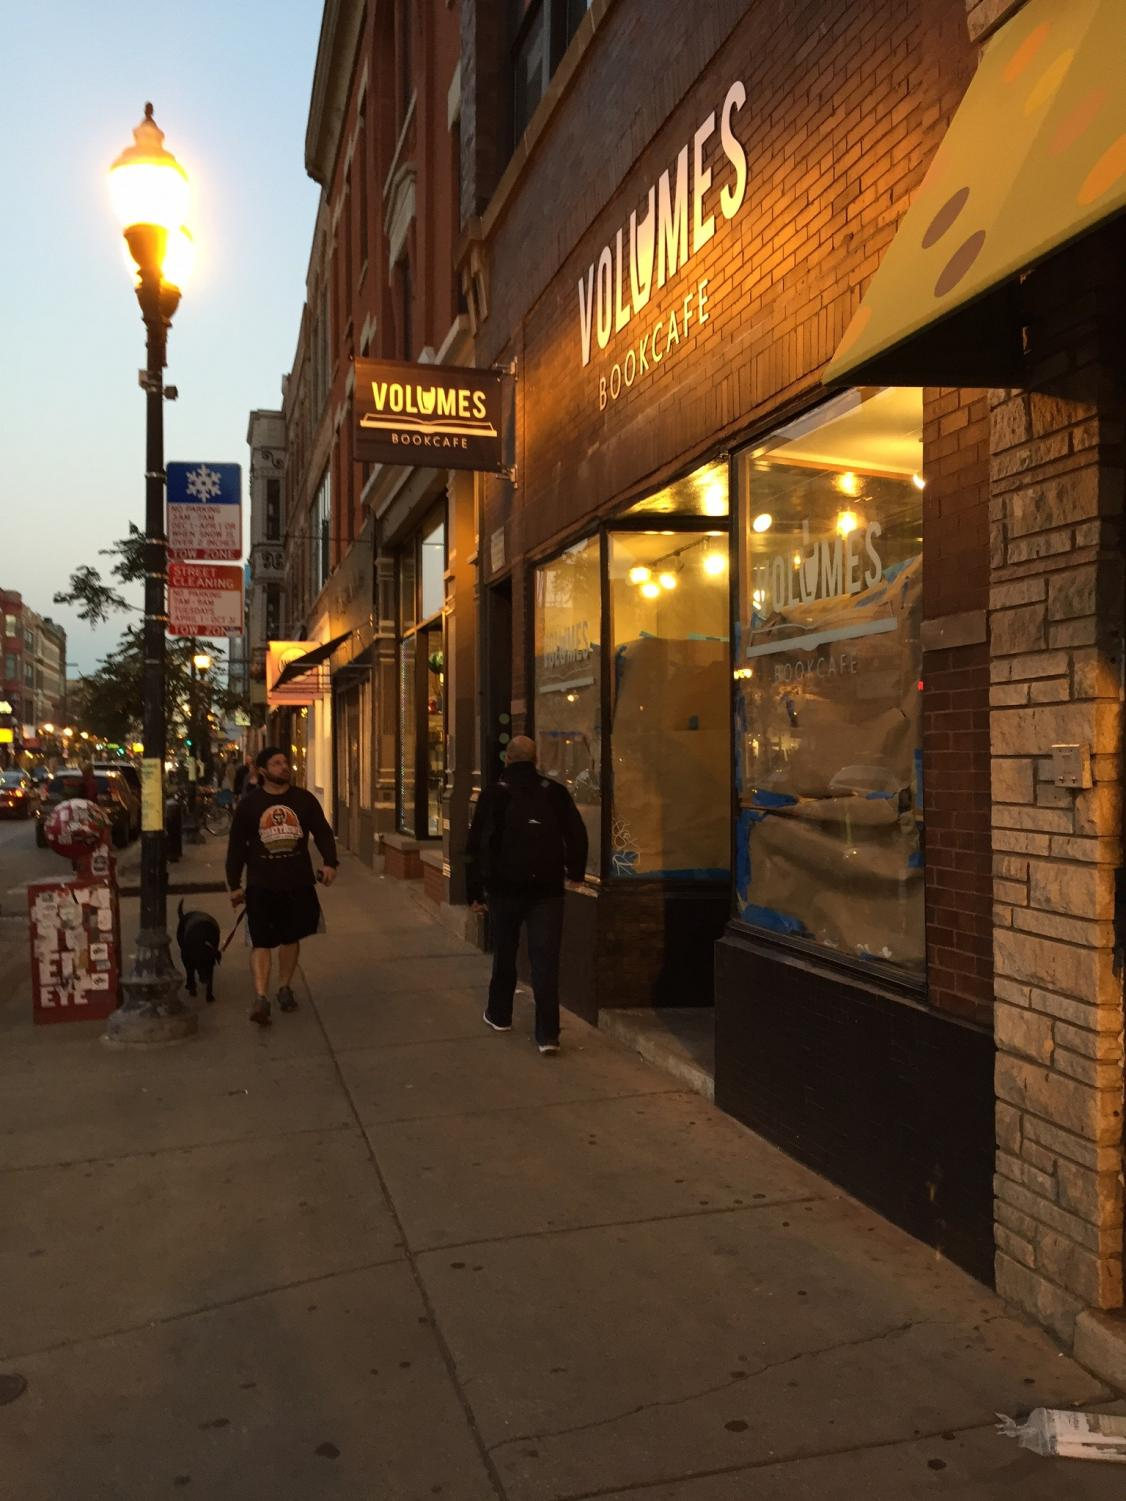 Volumes Bookcafe, 1474 N. Milwaukee Ave., will sell a mix of booze and books, distinguishing itself from the bookstores already in the neighborhood.